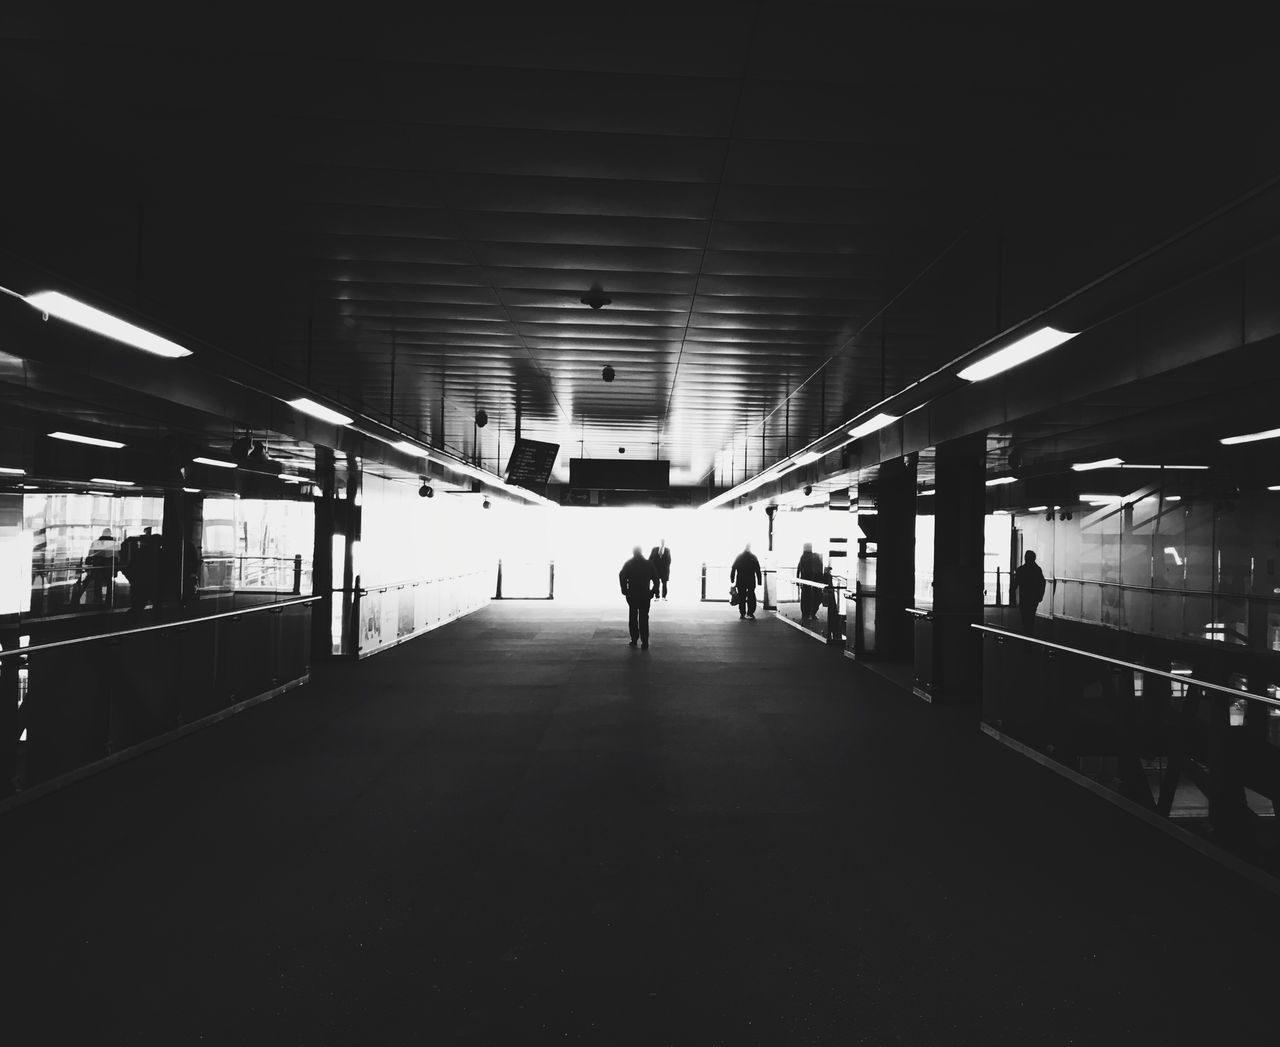 Indoors  Architecture City Manchester UK Manchester Symmetry Blackandwhite Vanishing Point U.K. Subway Station Real People Illuminated Men Built Structure Full Length Public Transportation Women One Person Commuter Day